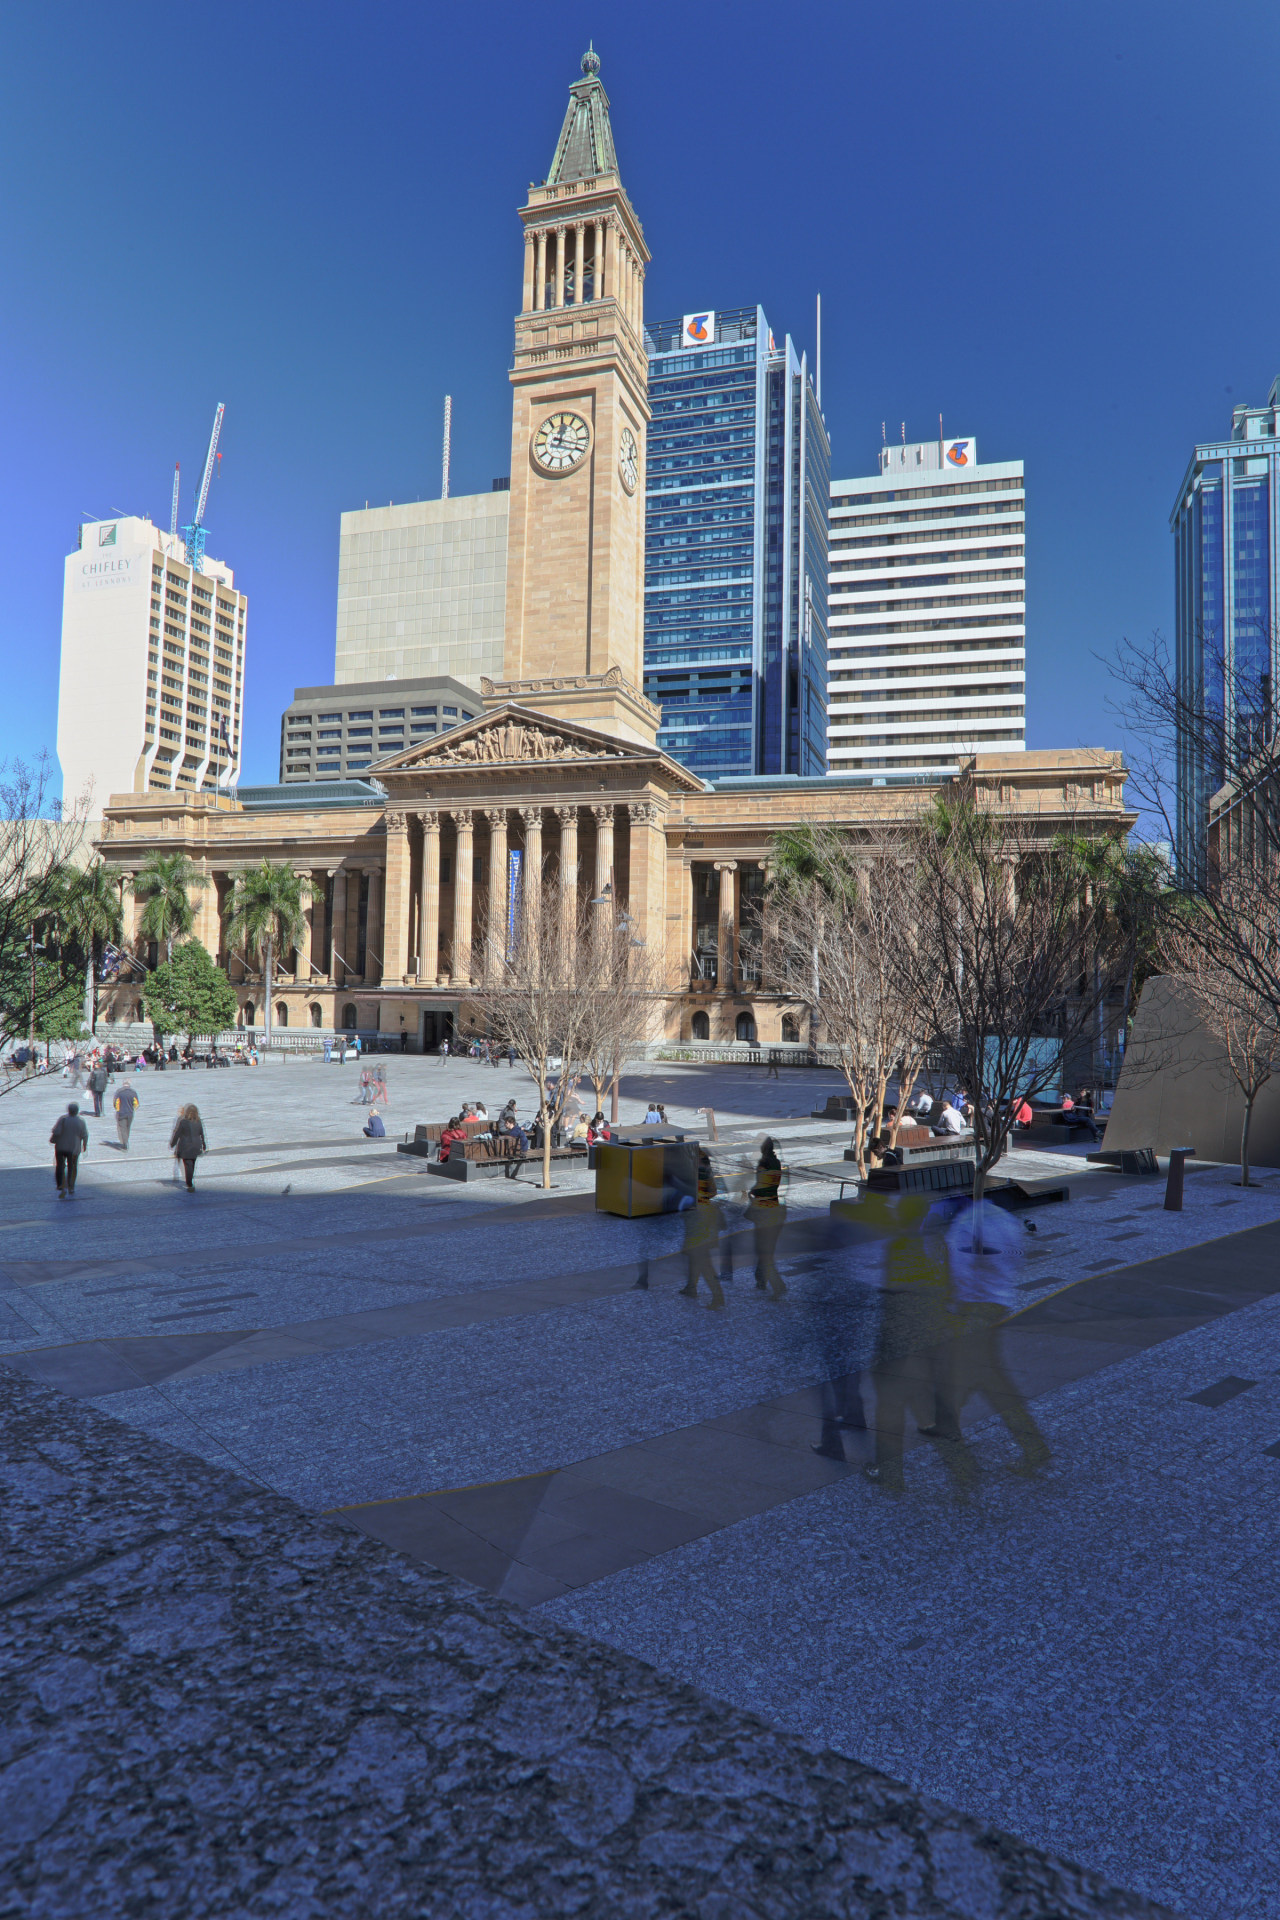 Brisbane City Hall has been restored and updated architecture, building, city, cityscape, daytime, downtown, landmark, metropolis, metropolitan area, plaza, reflection, sky, skyline, skyscraper, tourist attraction, tower, tower block, town square, tree, urban area, blue